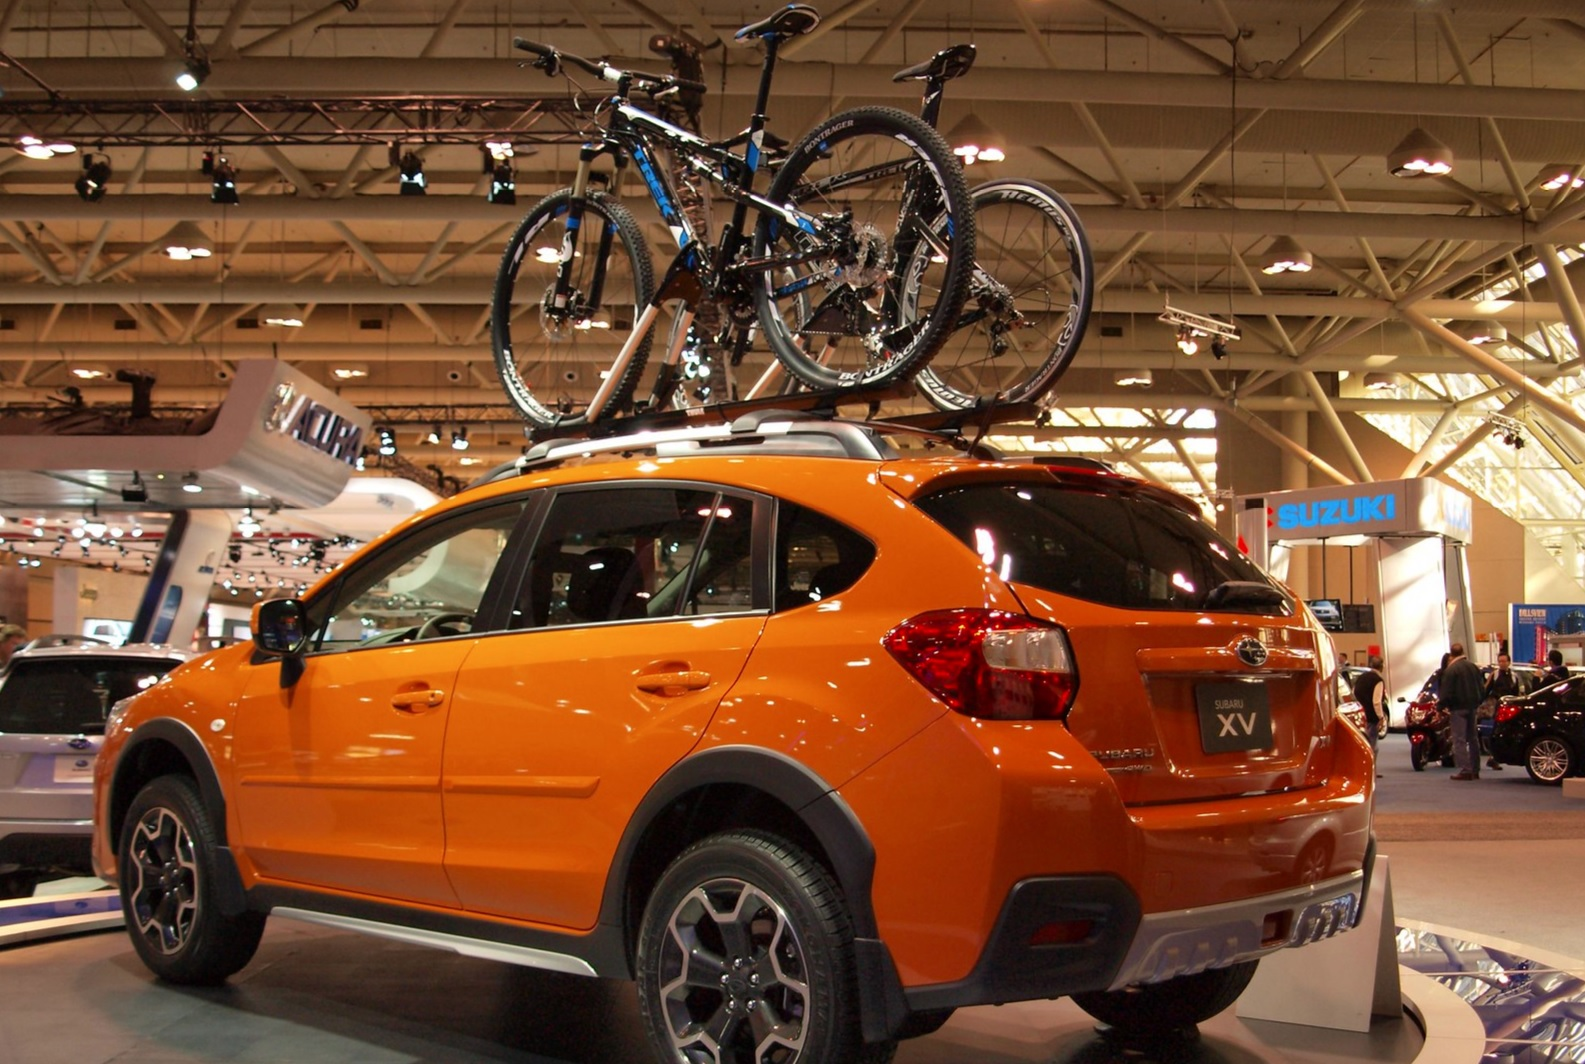 Best Bike Rack For A Subaru Crosstrek